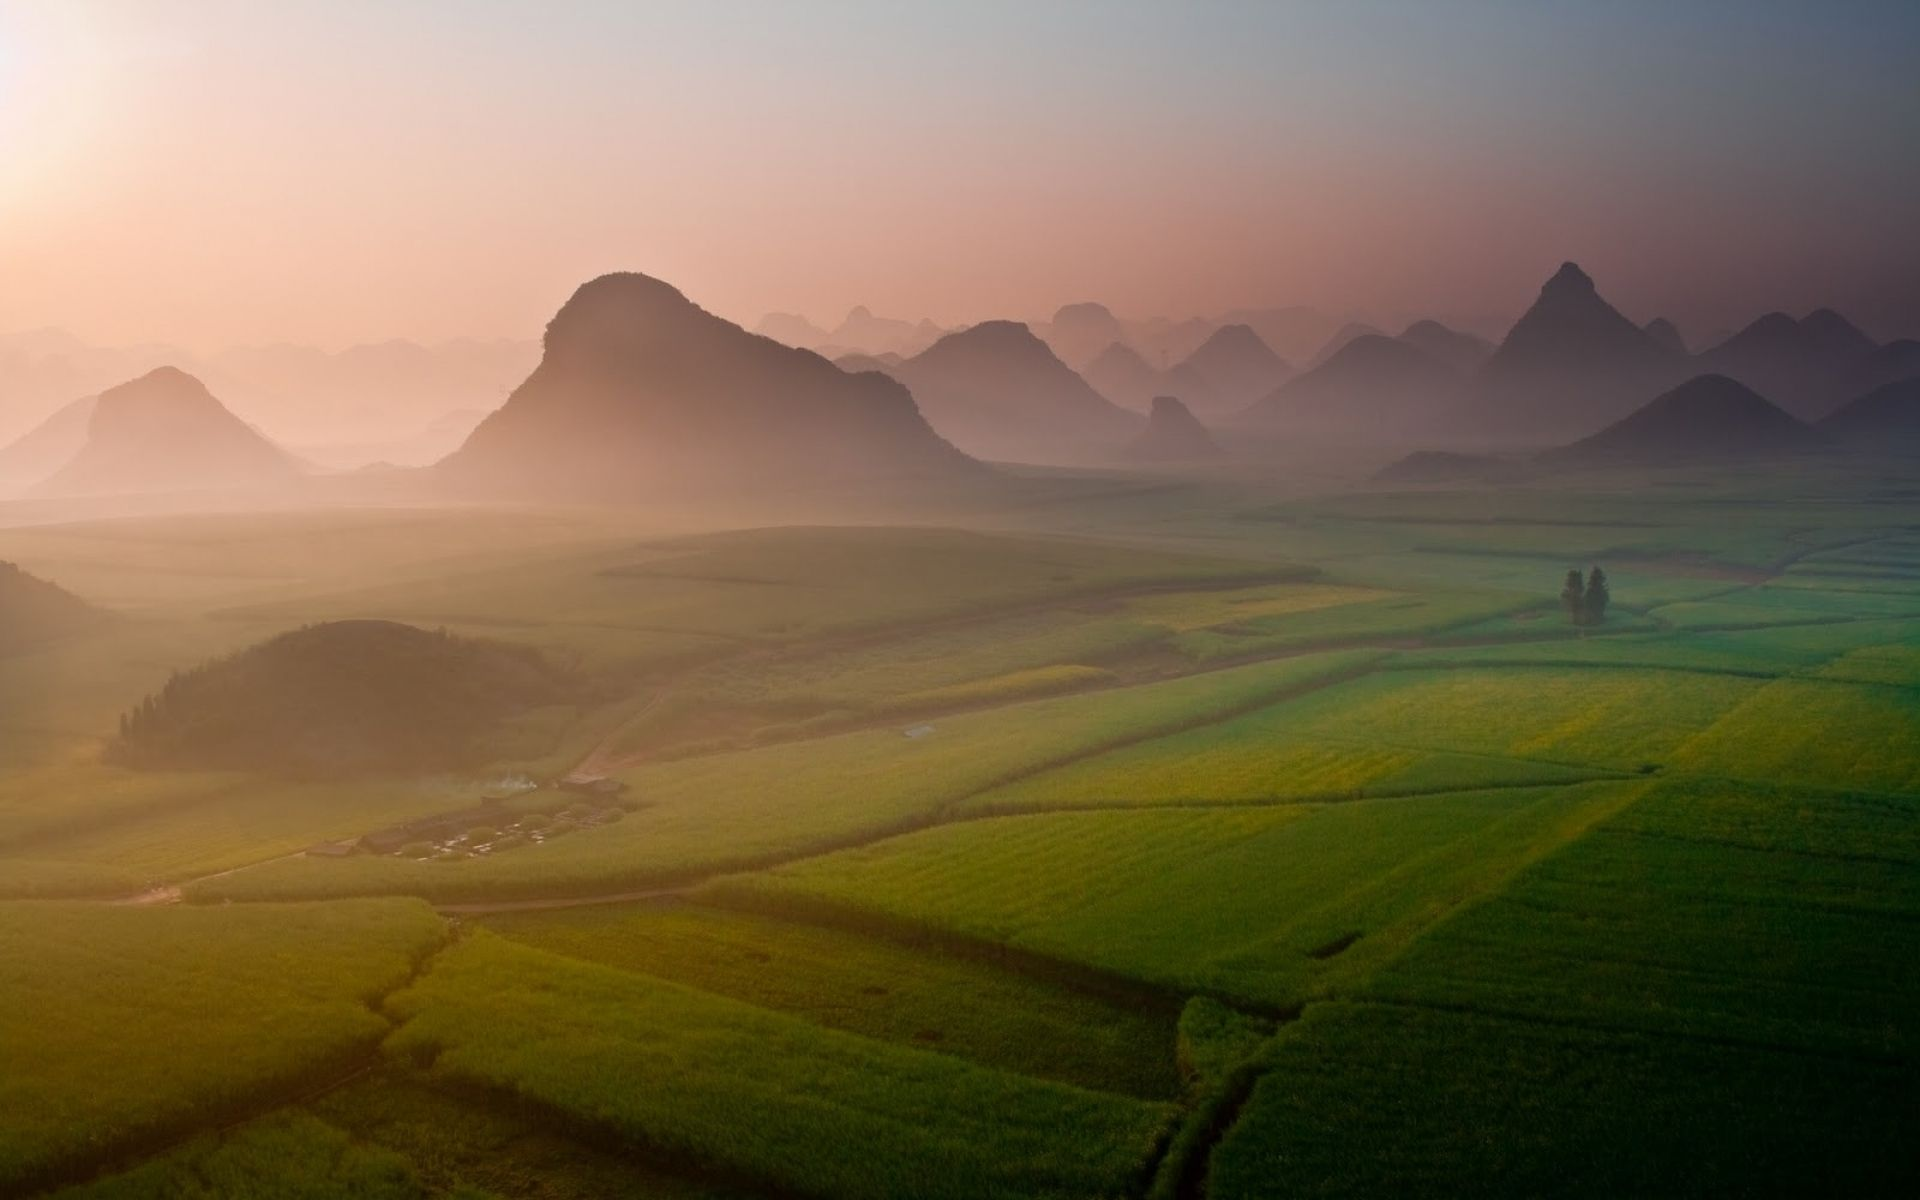 Morning mist on fields in China